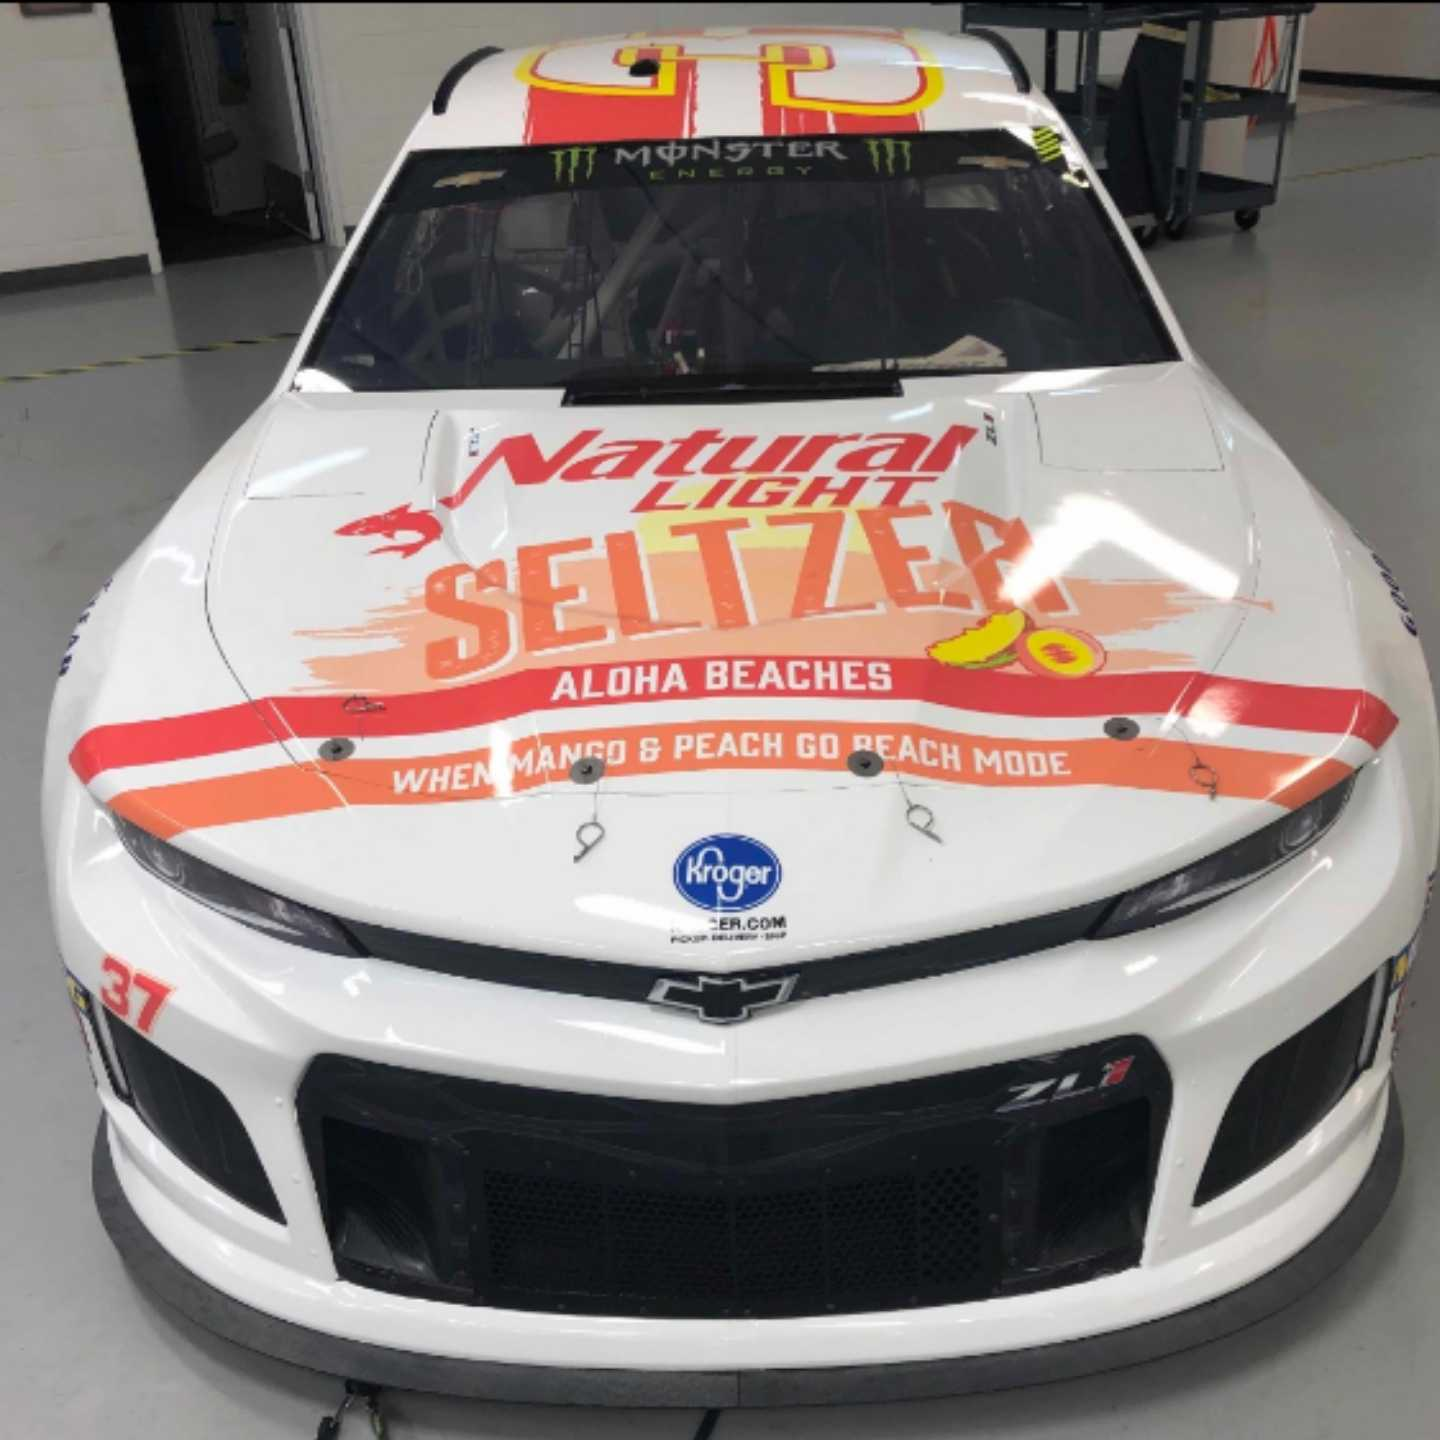 Natural Light Seltzer, Anheuser-Busch, Nascar, 360 MAGAZINE